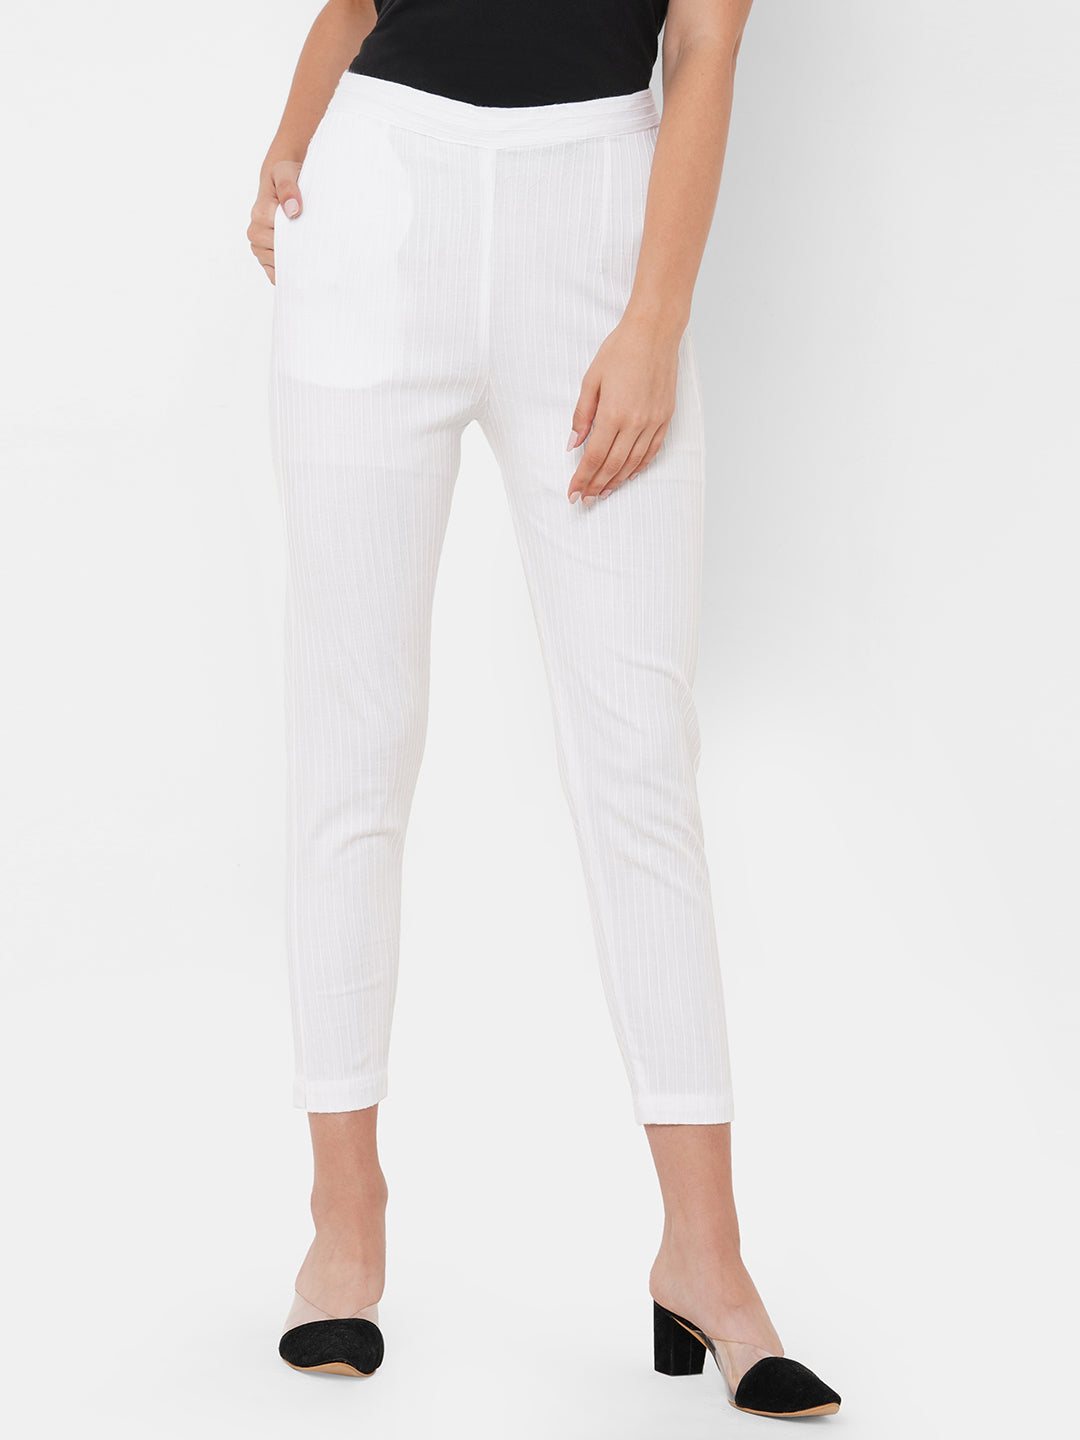 Woven Striped Solid Lycra Pant - White